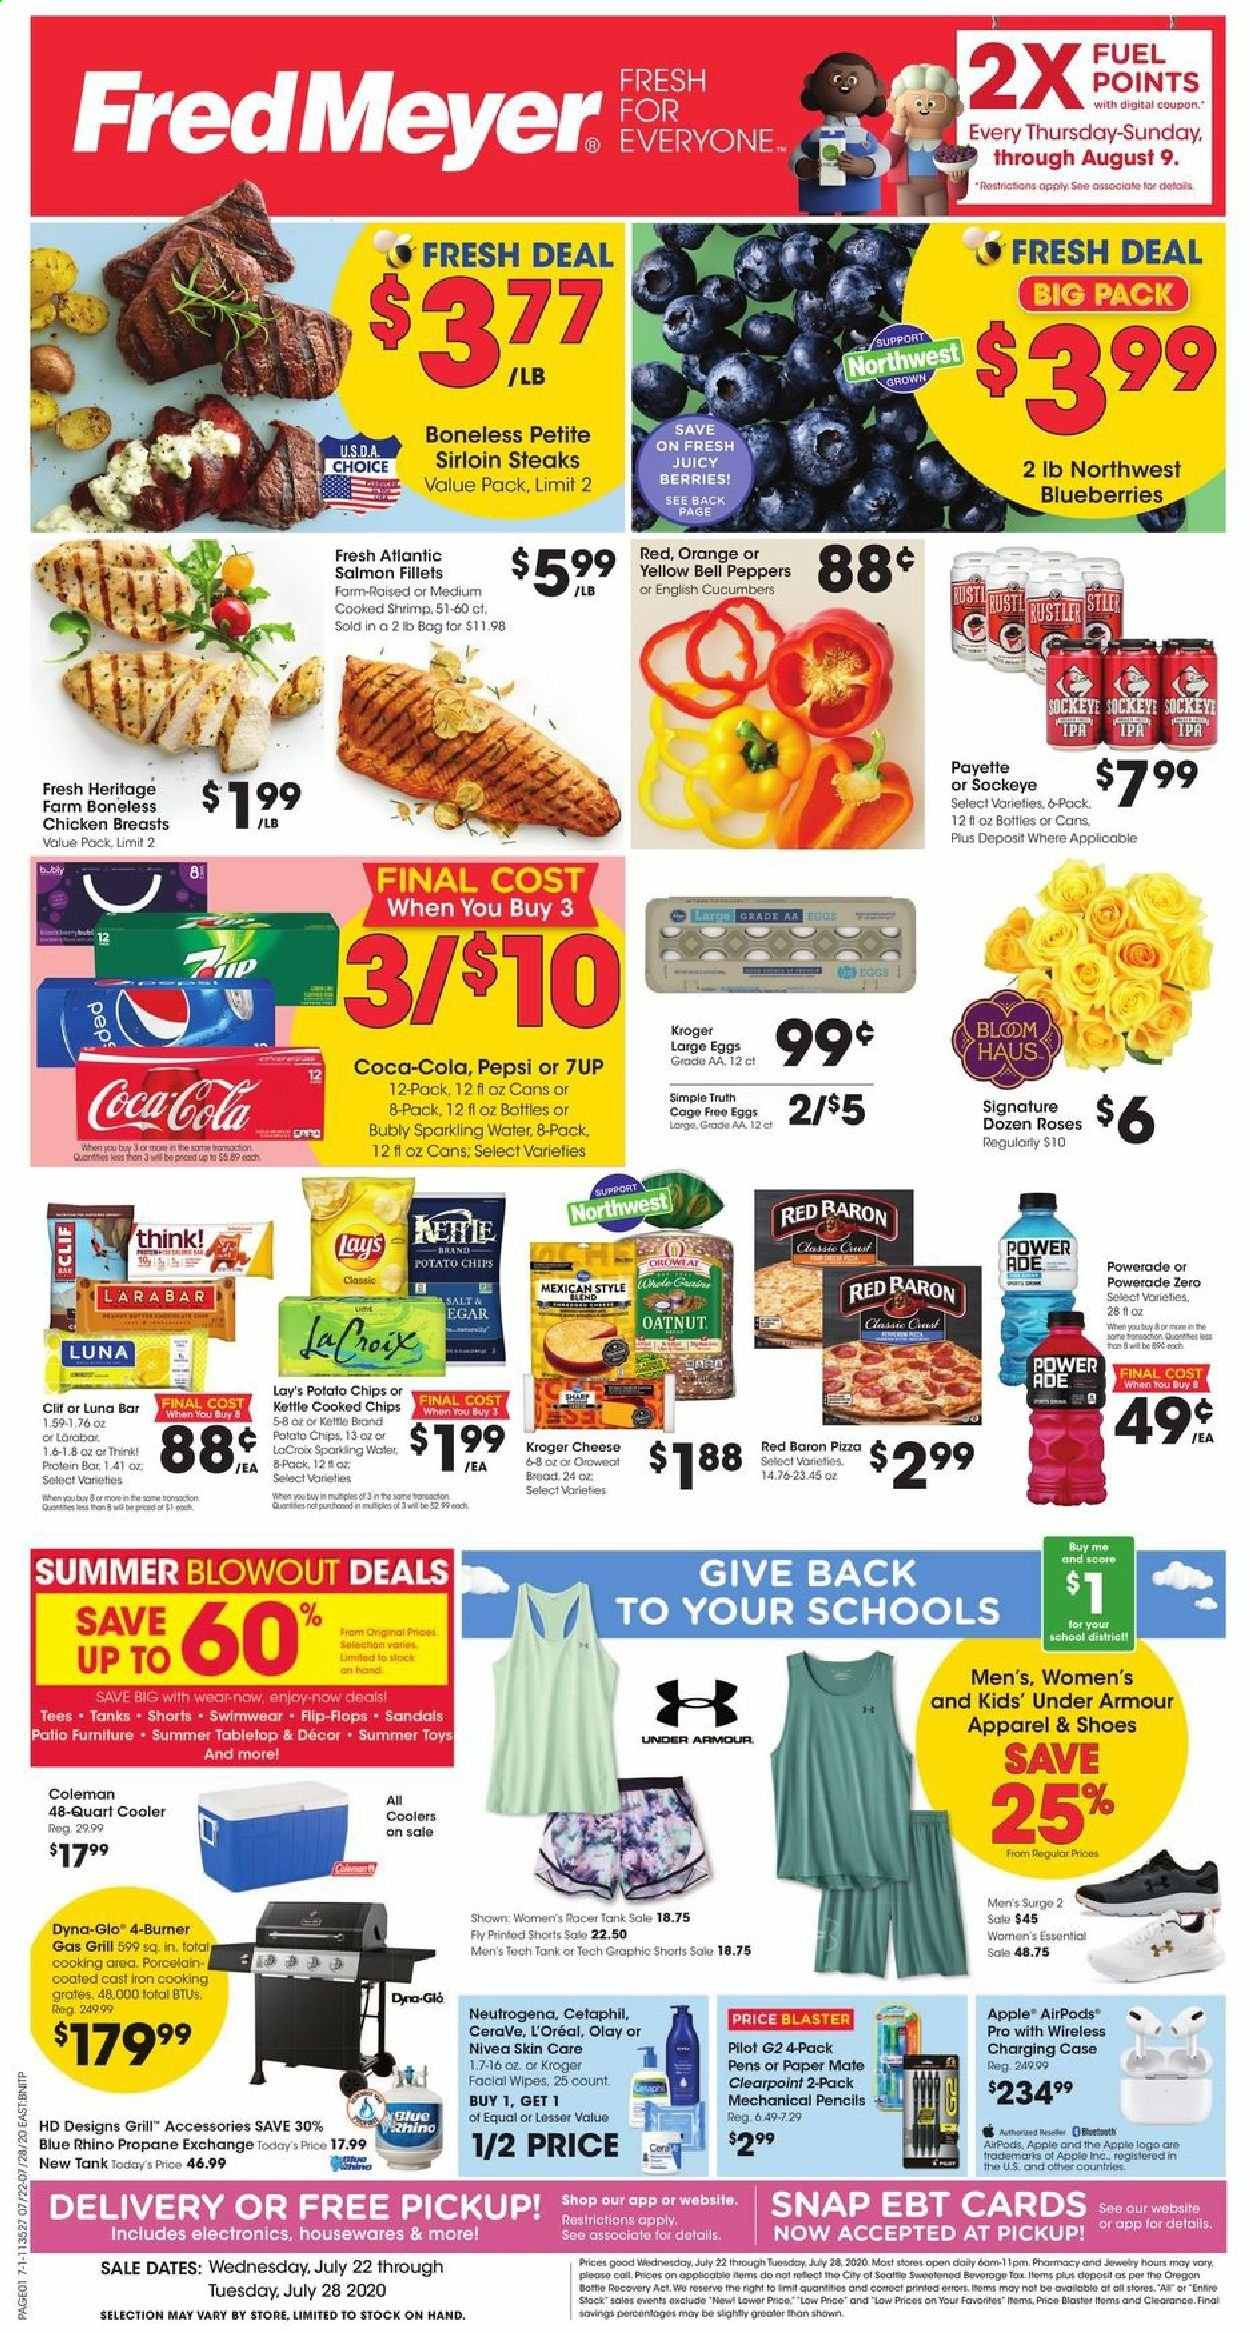 Fred Meyer Flyer - 07.22.2020 - 07.28.2020 - Sales products - apparel, bag, bell peppers, blueberries, bottle, bread, case, cerave, coca-cola, cucumbers, dates, eggs, fuel, furniture, gas grill, grill, l'oréal, mate, neutrogena, salmon, sandals, shoes, shorts, shrimp, surge, tee, under armour, wipes, iron, pizza, potato chips, powerade, protein, chicken, chicken breast, patio, pepsi, nivea, olay, orange, chips, toys, cheese, sparkling water, jewelry, roses, wireless, salt, cooler, lay's, blaster, outdoor furniture, pencils, peppers, rust, shrimps, chicken breasts, protein bar, cast iron, kettle, rhino. Page 1.